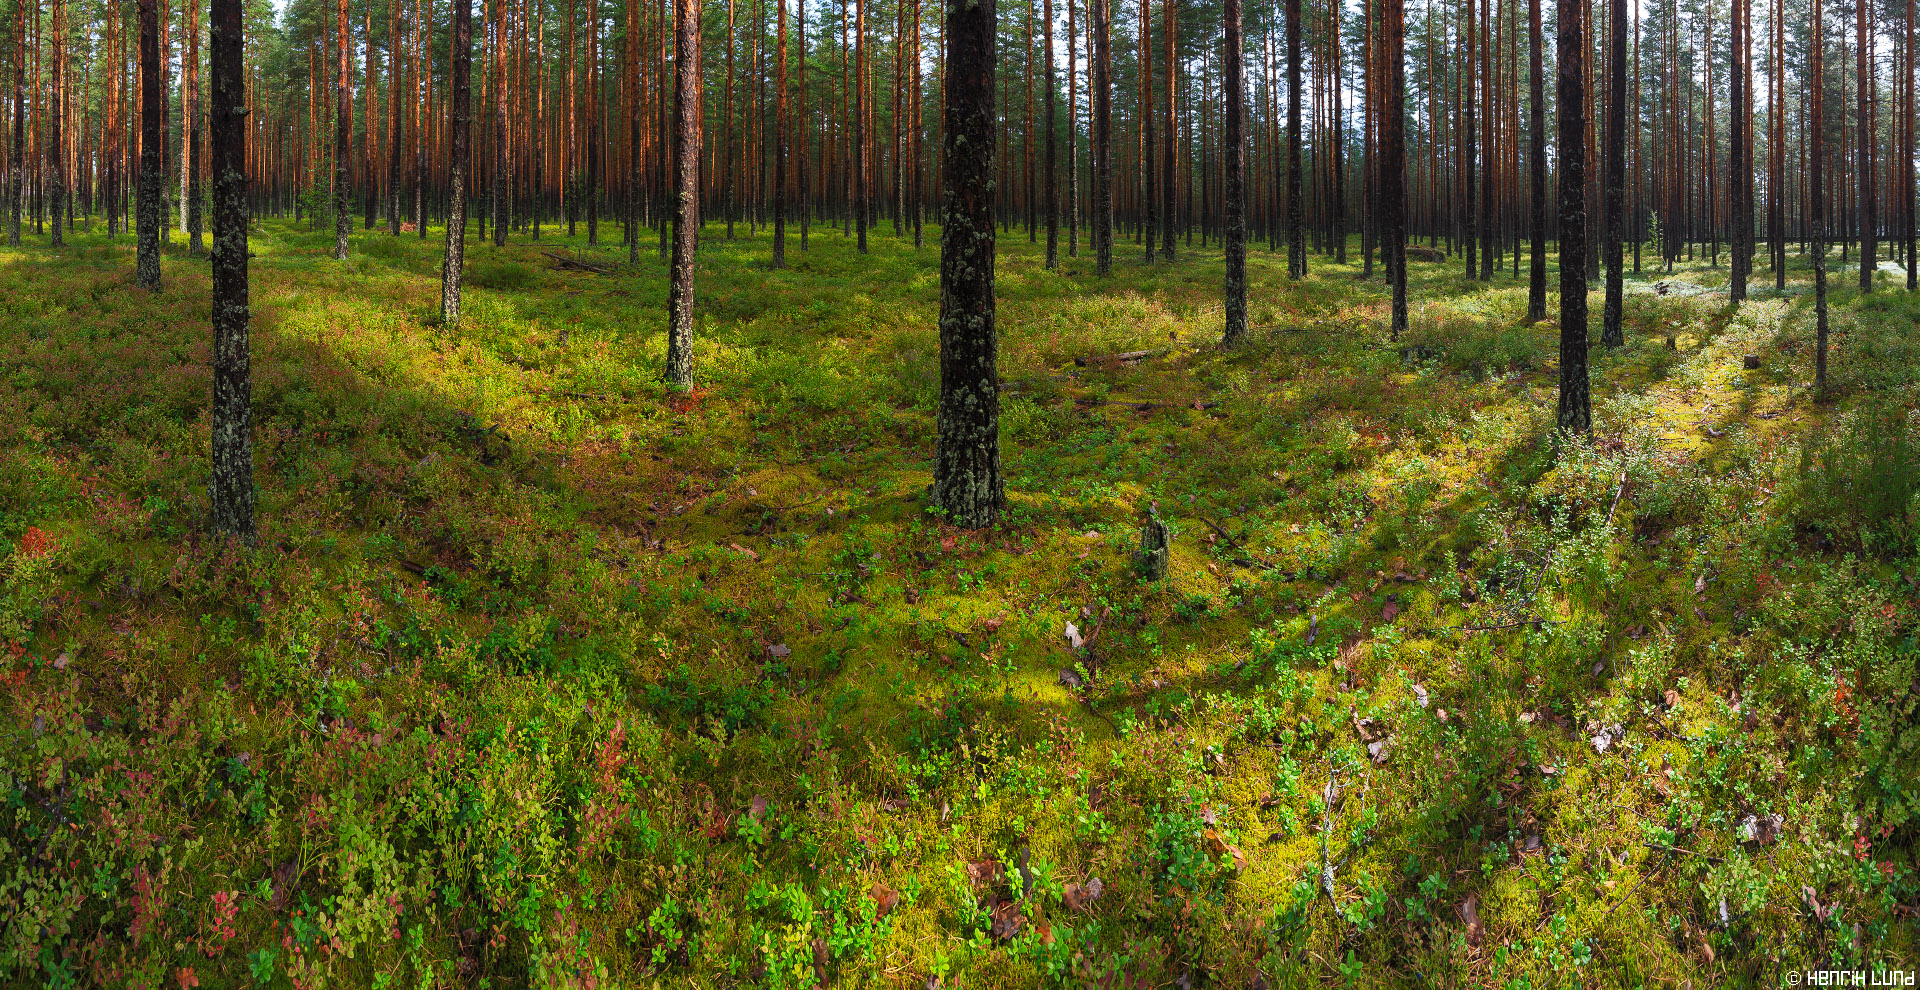 Panorama view over pine forest in Andersby, Lovisa, Finland. August 2014.